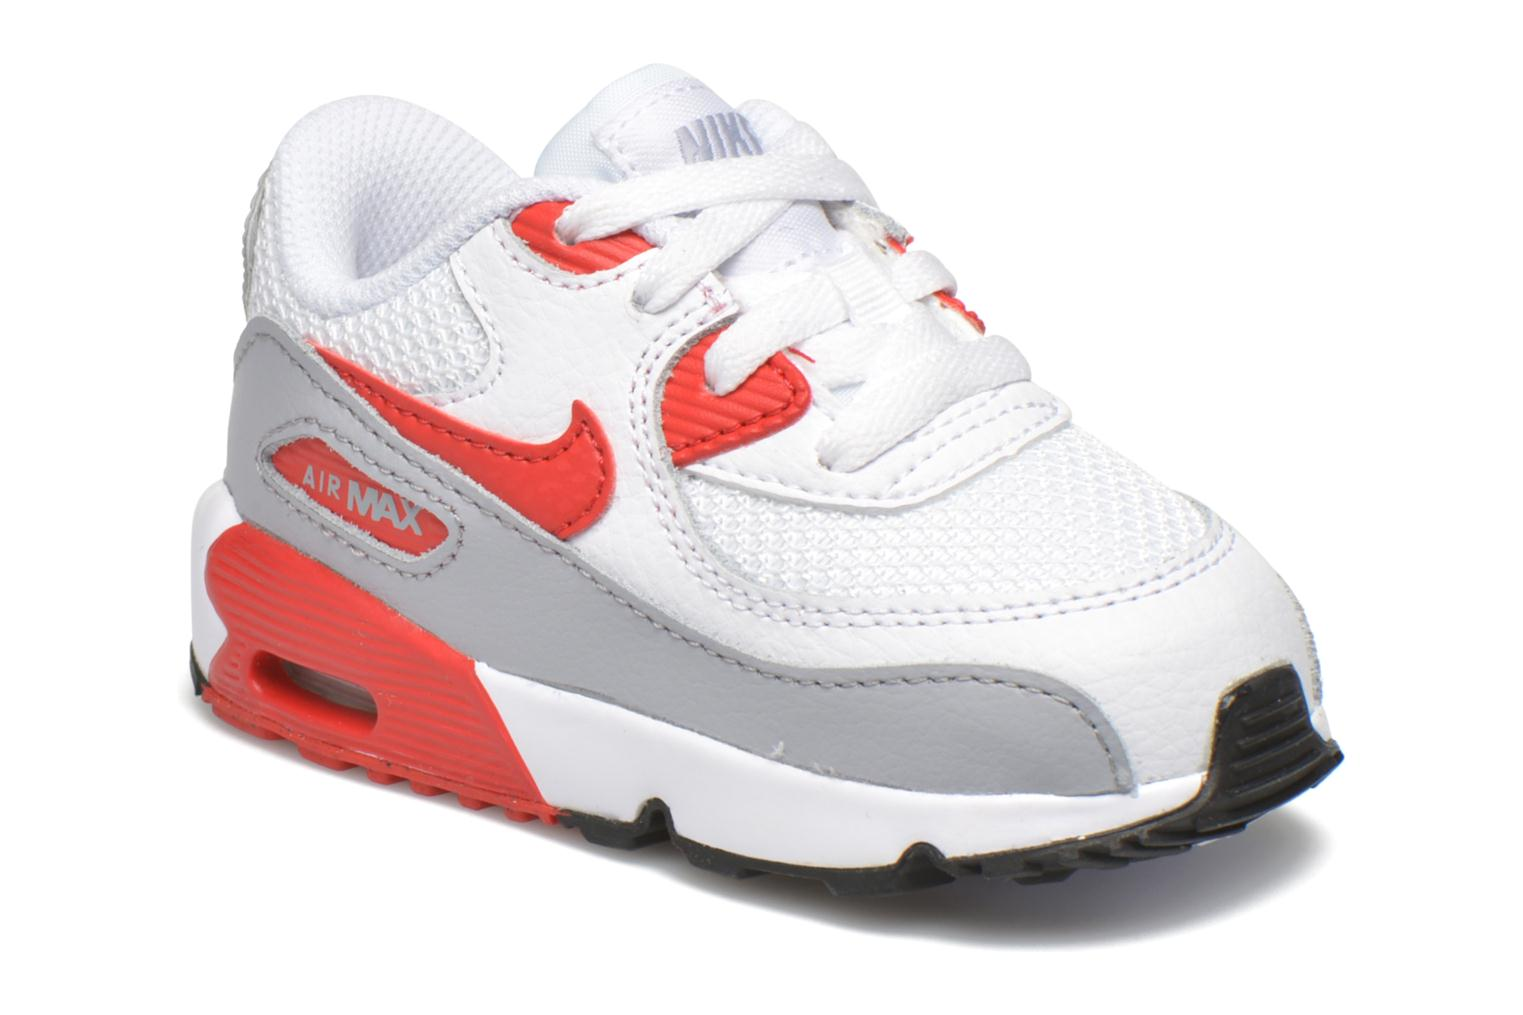 NIKE AIR MAX 90 MESH (TD) White Unvrsty Red-Wlf Gry-Blk